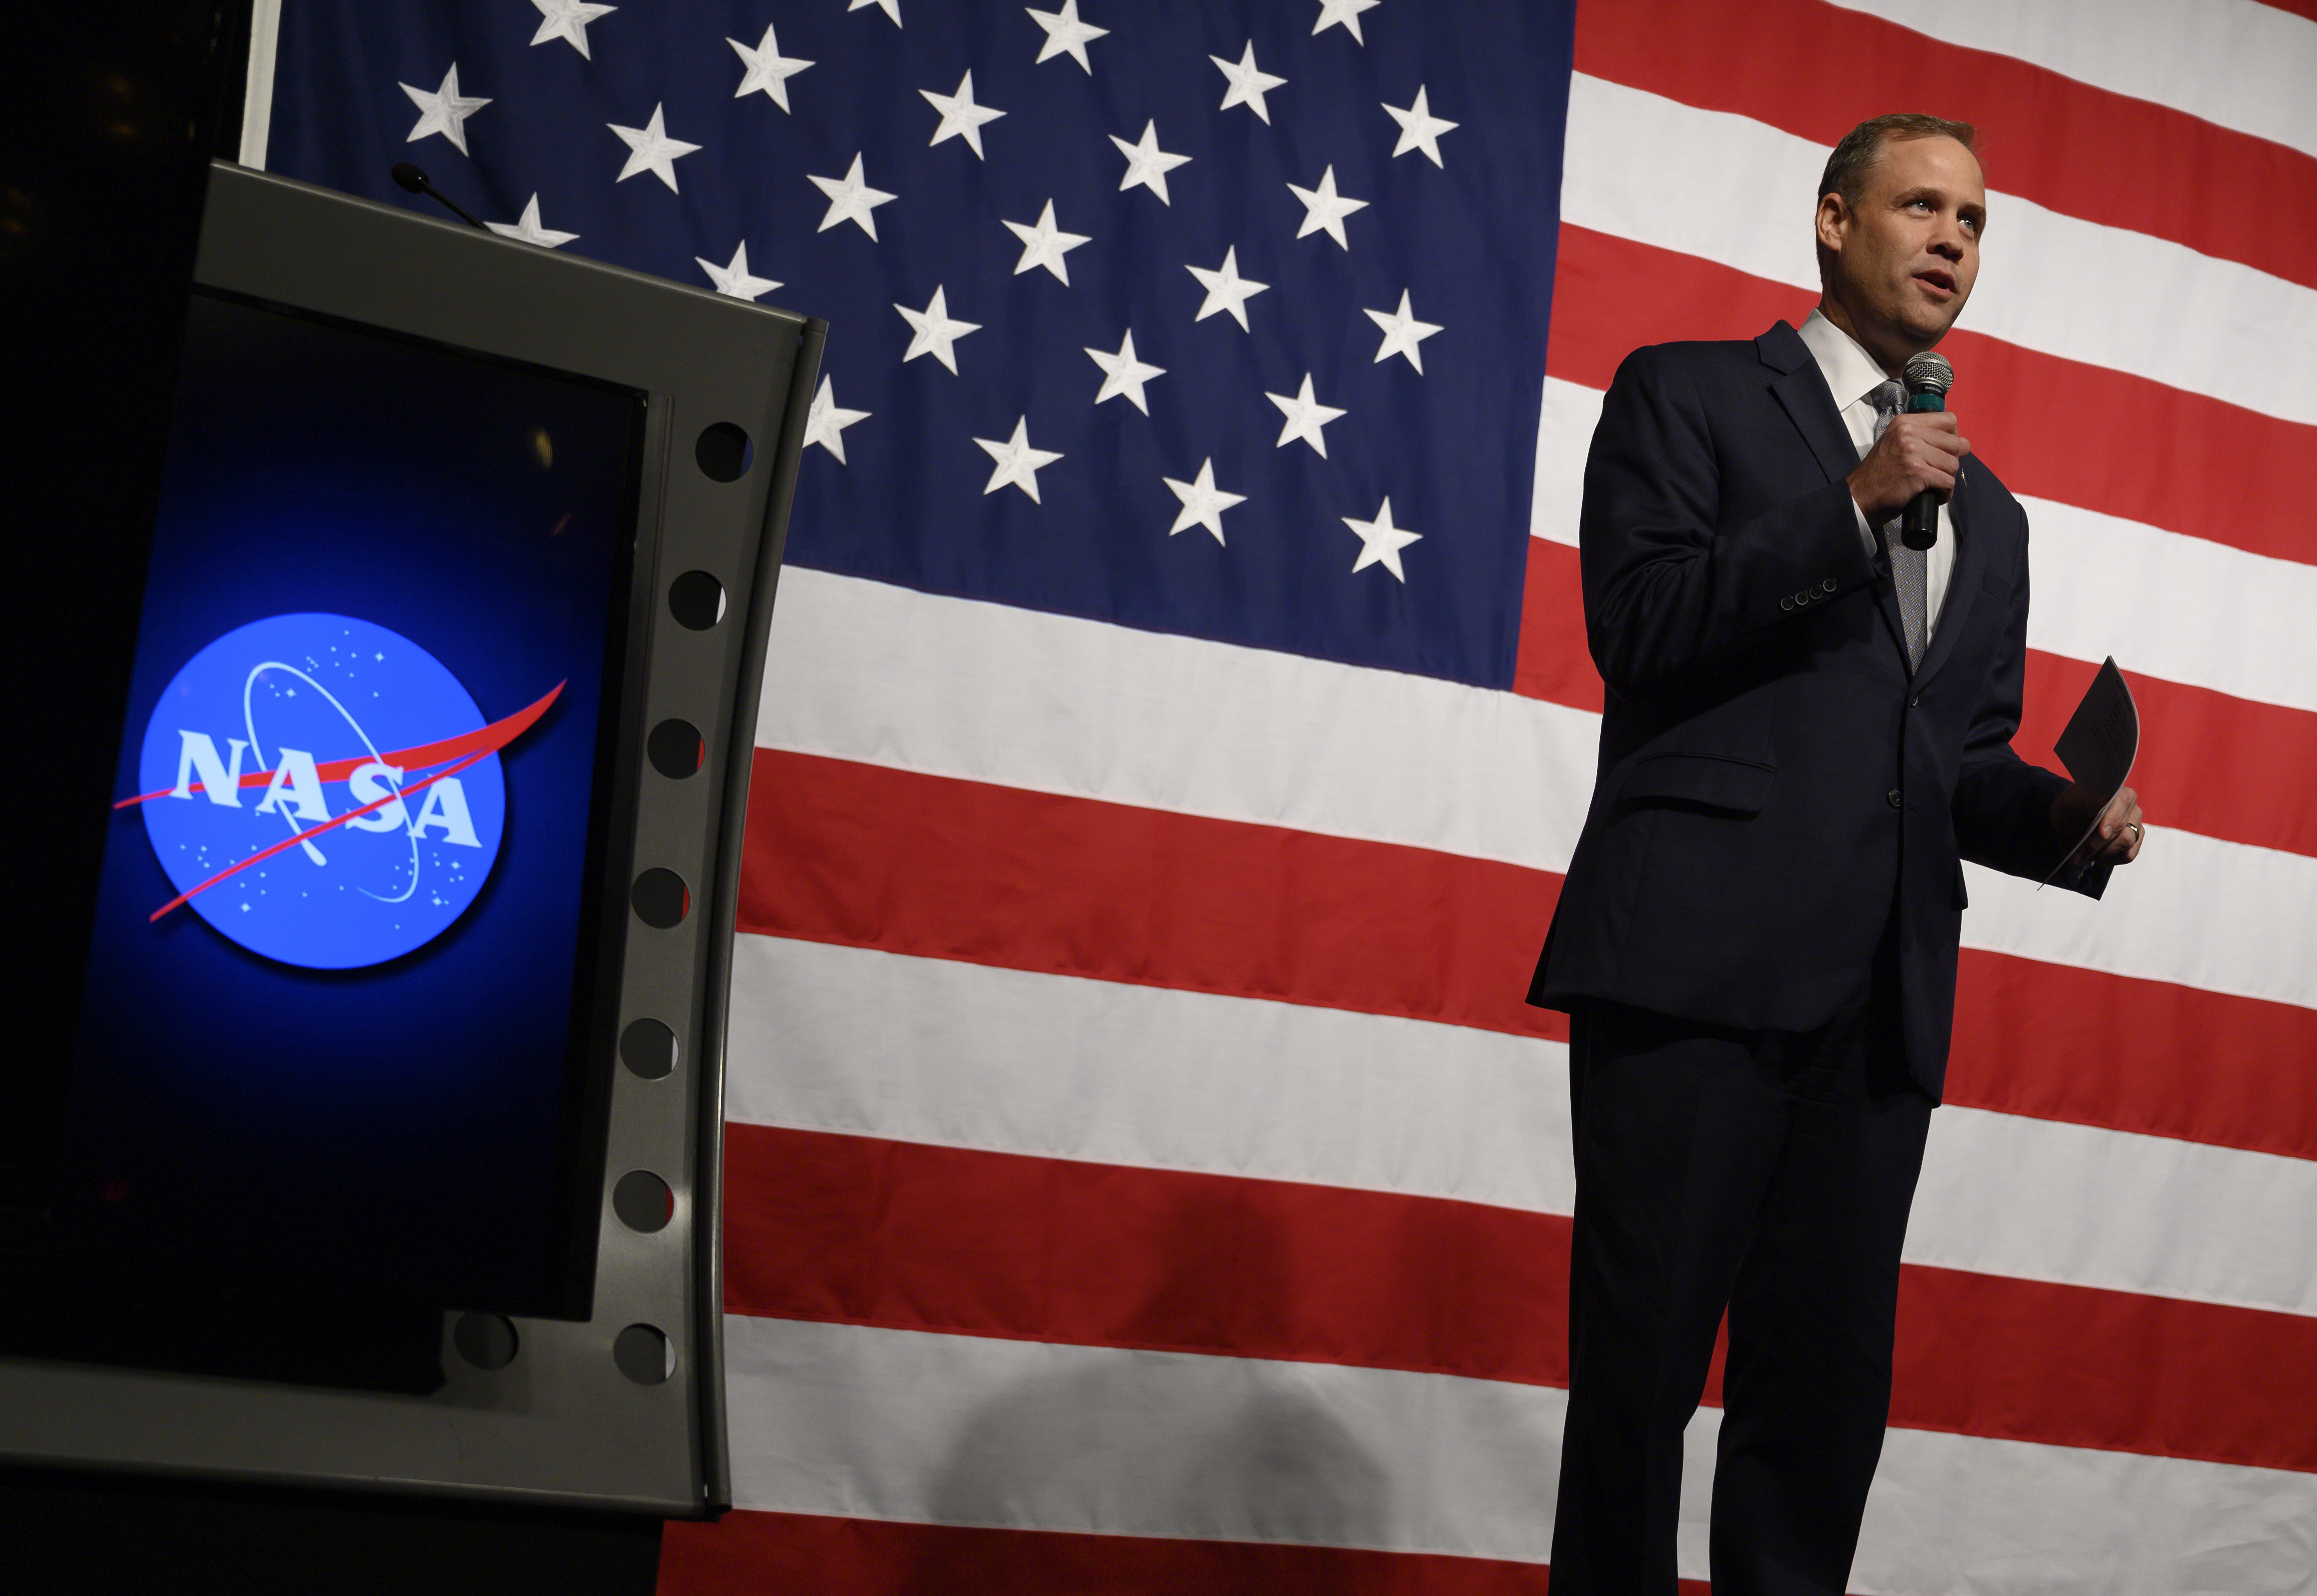 NASA Jim Bridenstine